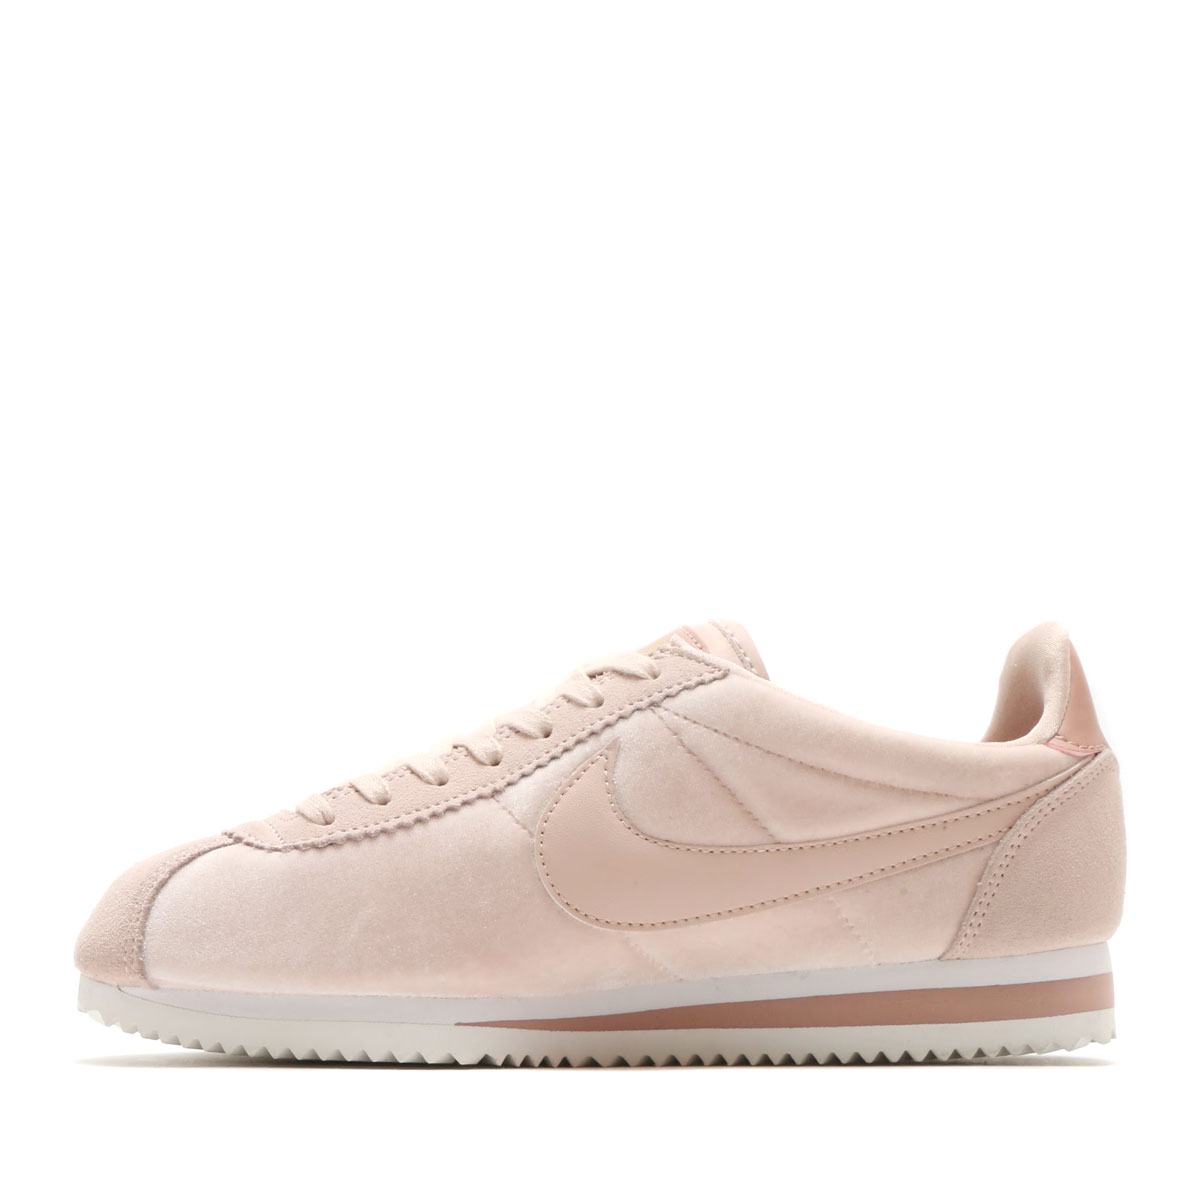 de7fe88f7d4 ... newest collection d2ce4 c6d34 NIKE WMNS CLASSIC CORTEZ SE  (ナイキウィメンズクラシックコルテッツ SE)